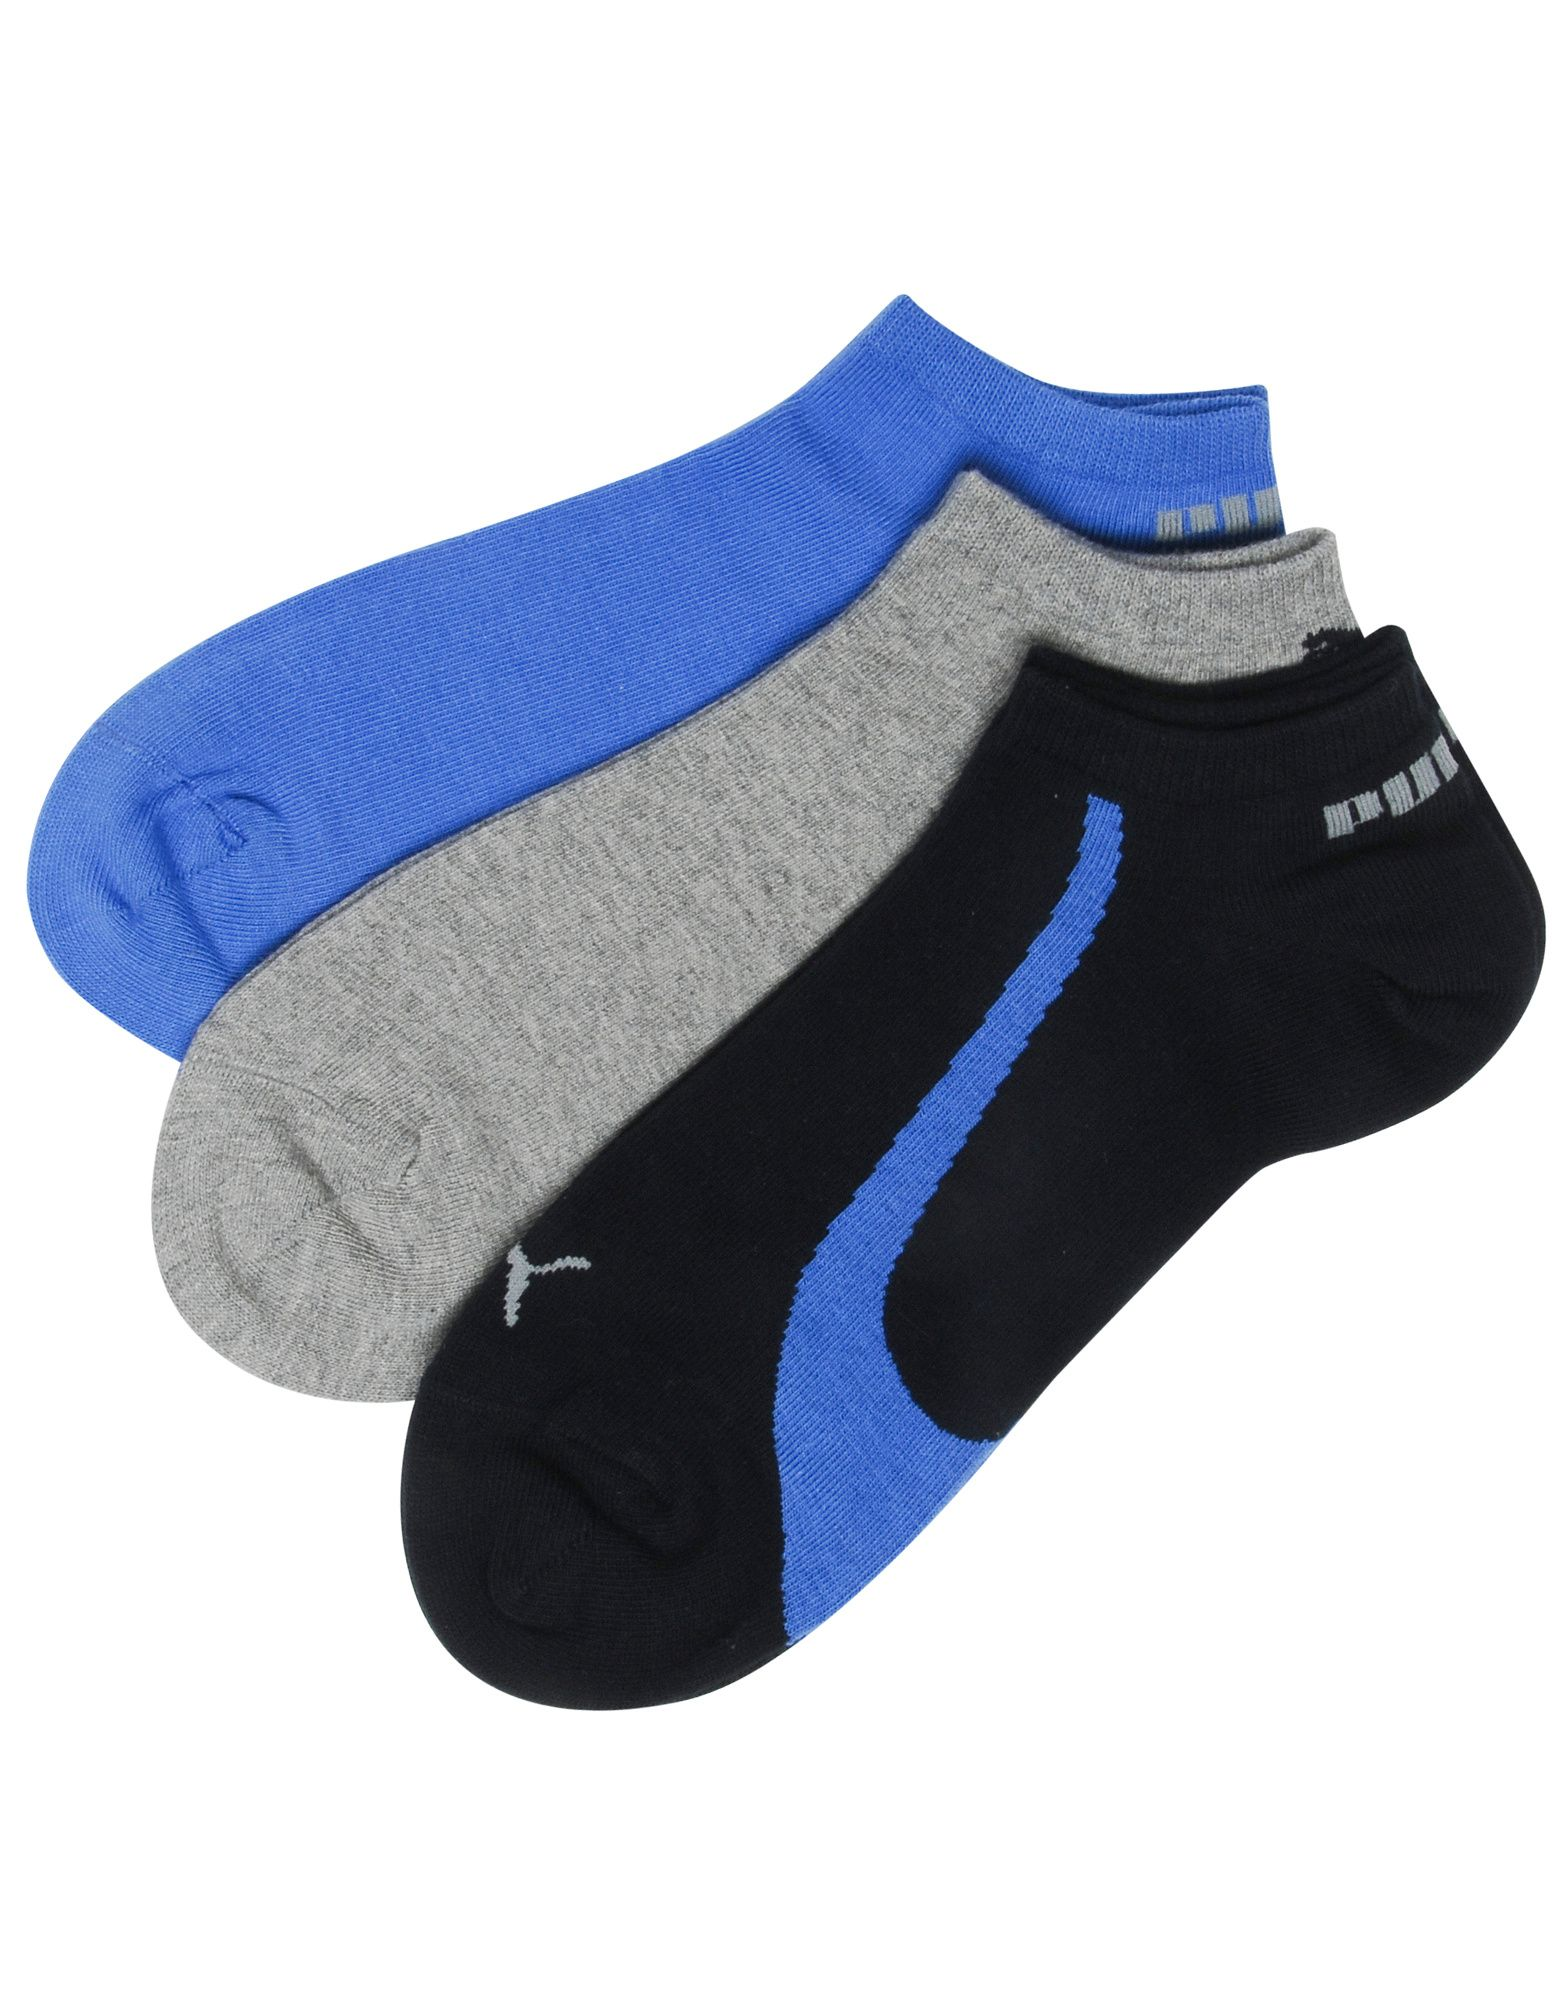 Puma Puma 3 Pack Socks Multi